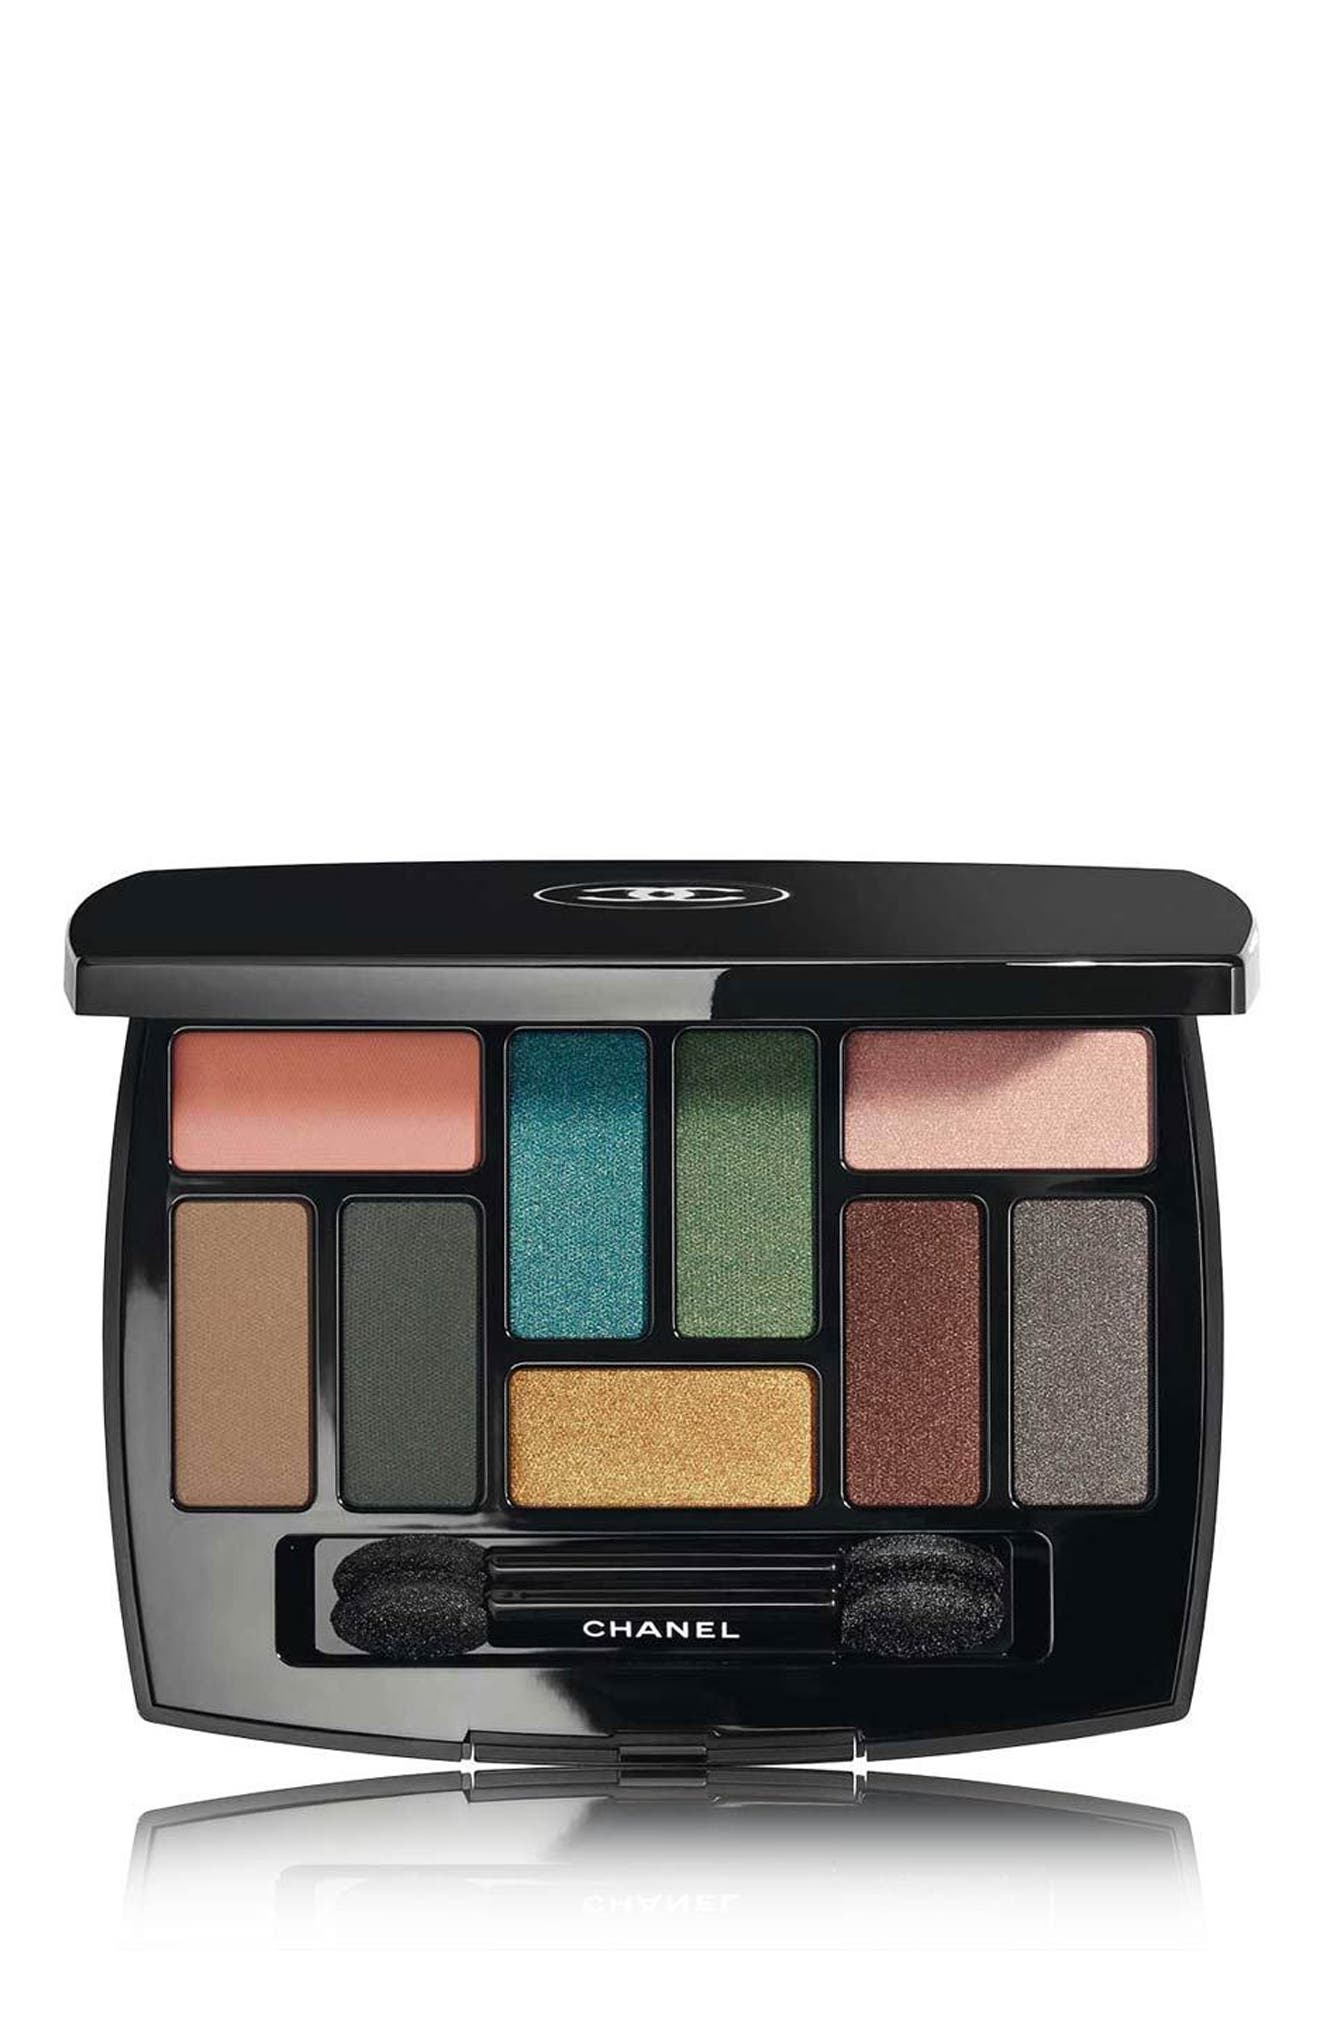 CHANEL EDITION No. 1 AFFRESCO LES 9 OMBRES 